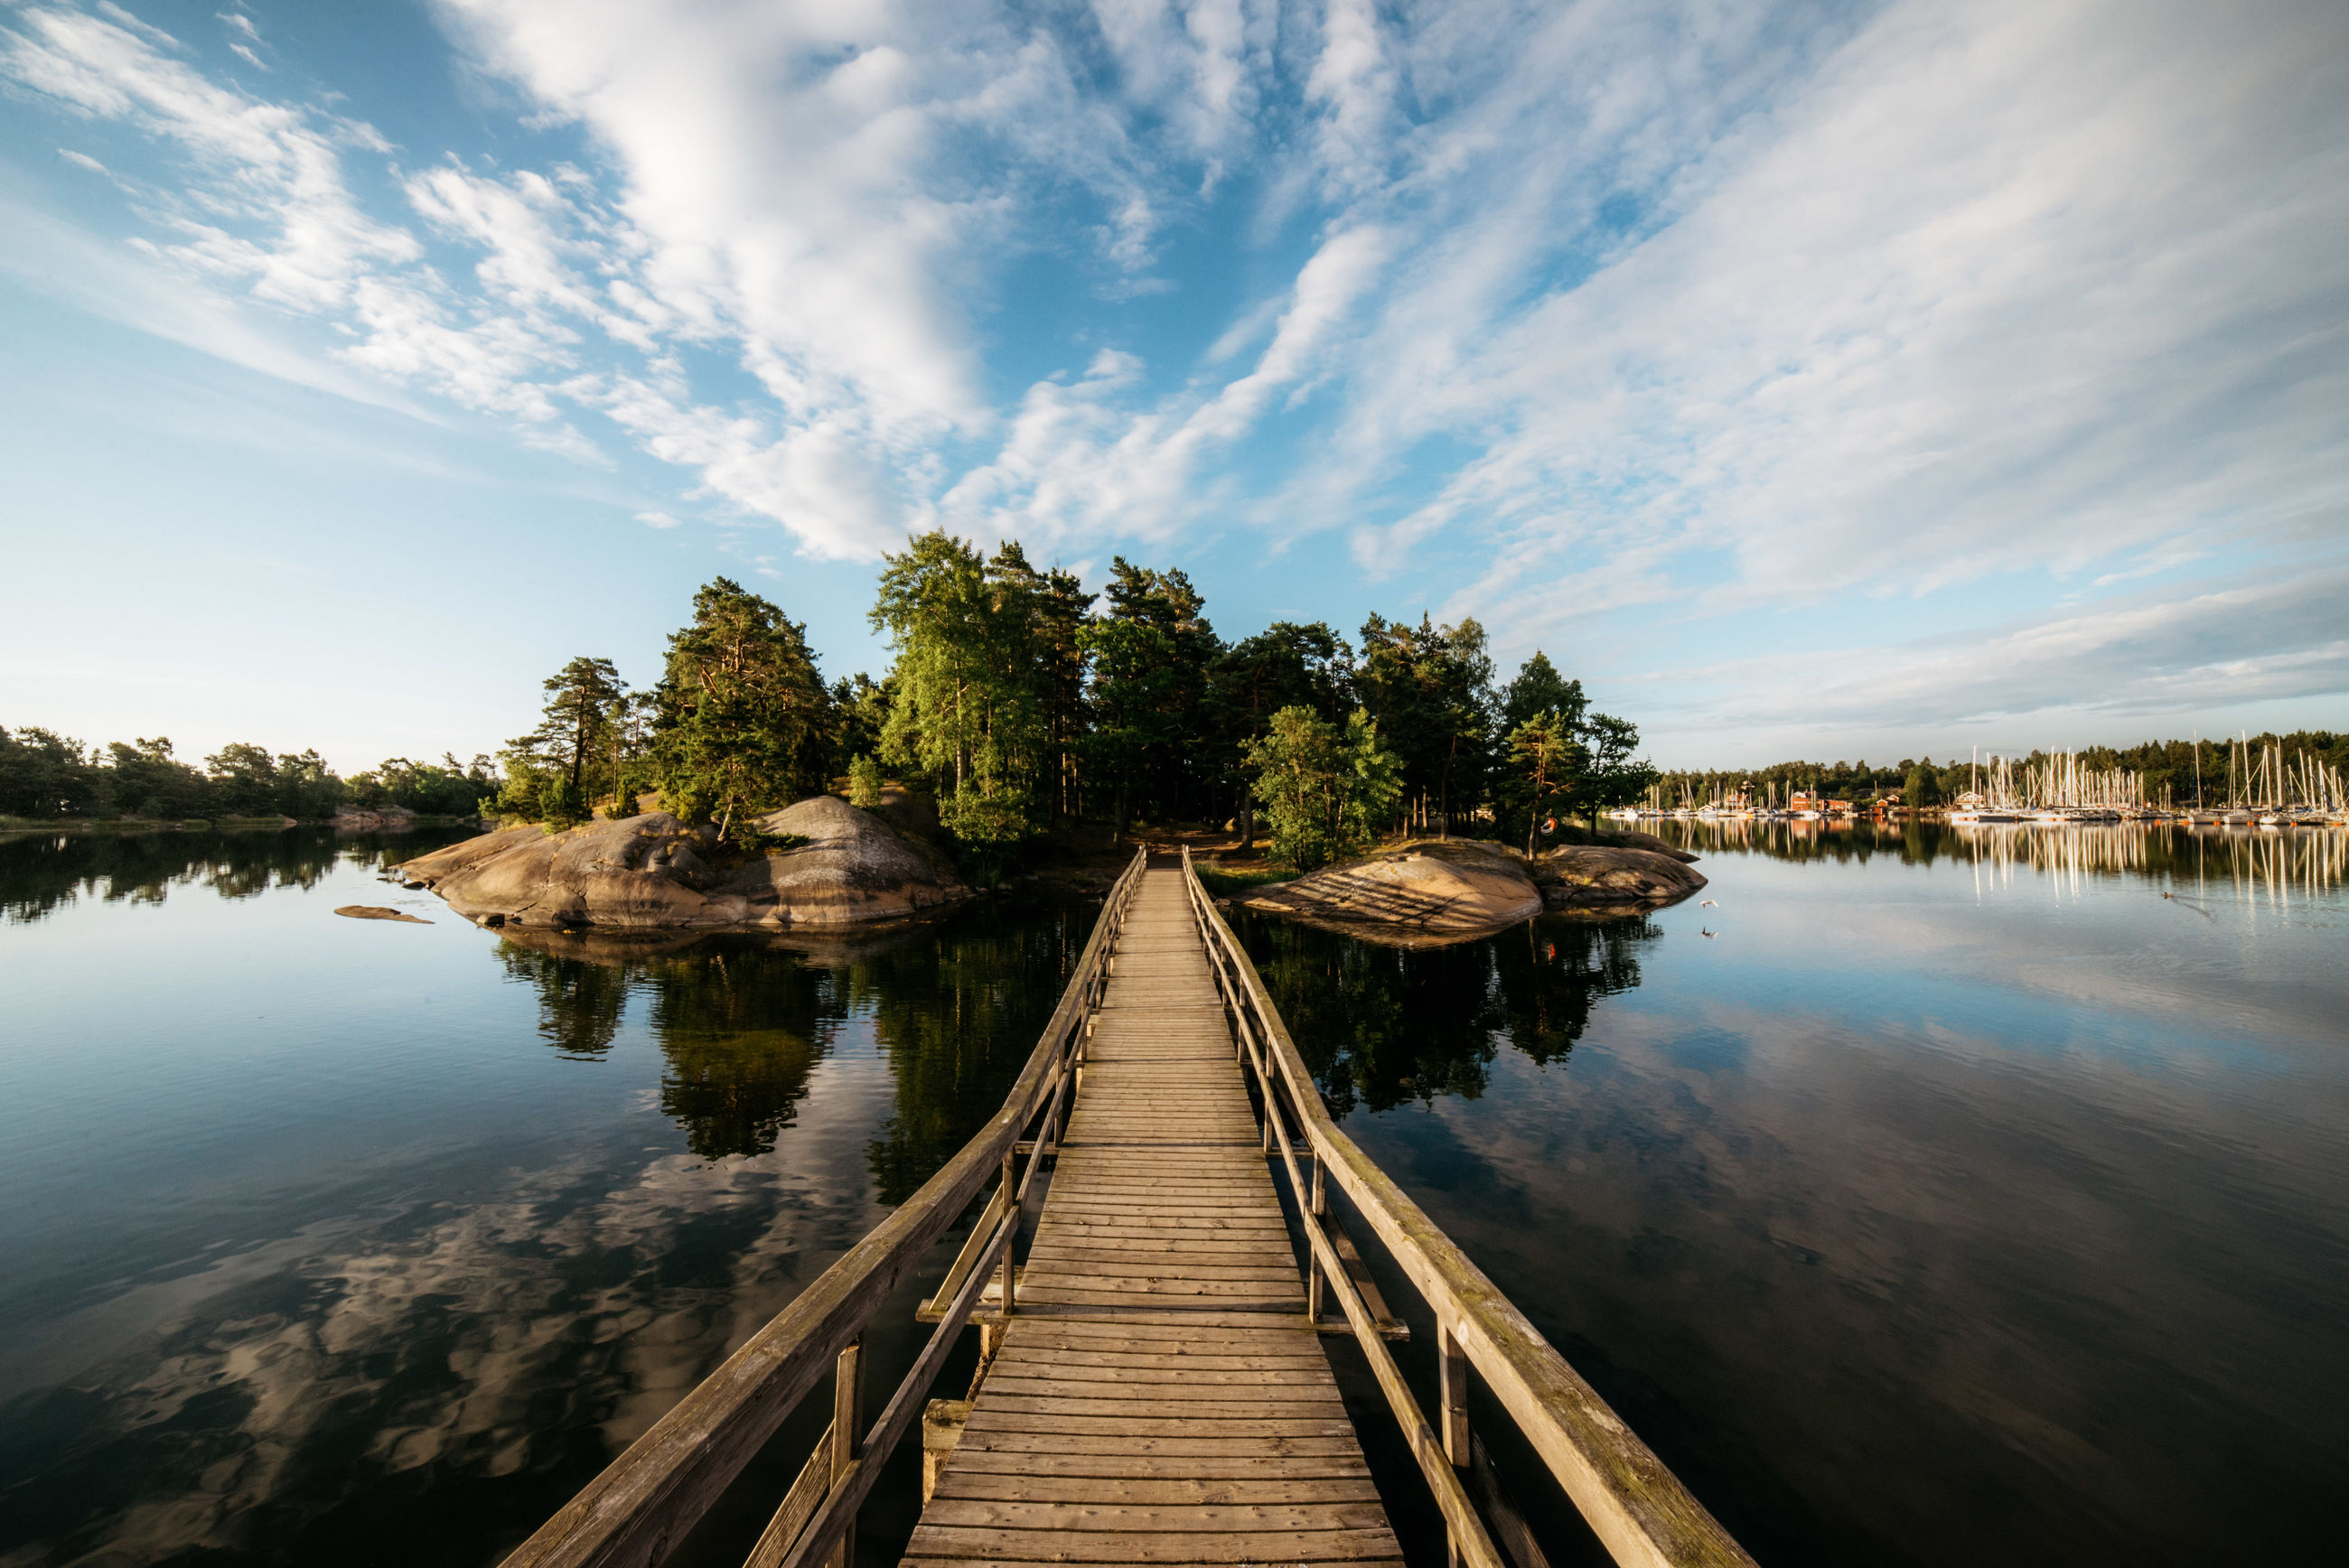 water, sky, tranquility, tranquil scene, direction, tree, cloud - sky, beauty in nature, the way forward, wood - material, nature, scenics - nature, diminishing perspective, reflection, plant, lake, day, no people, pier, outdoors, wood, long